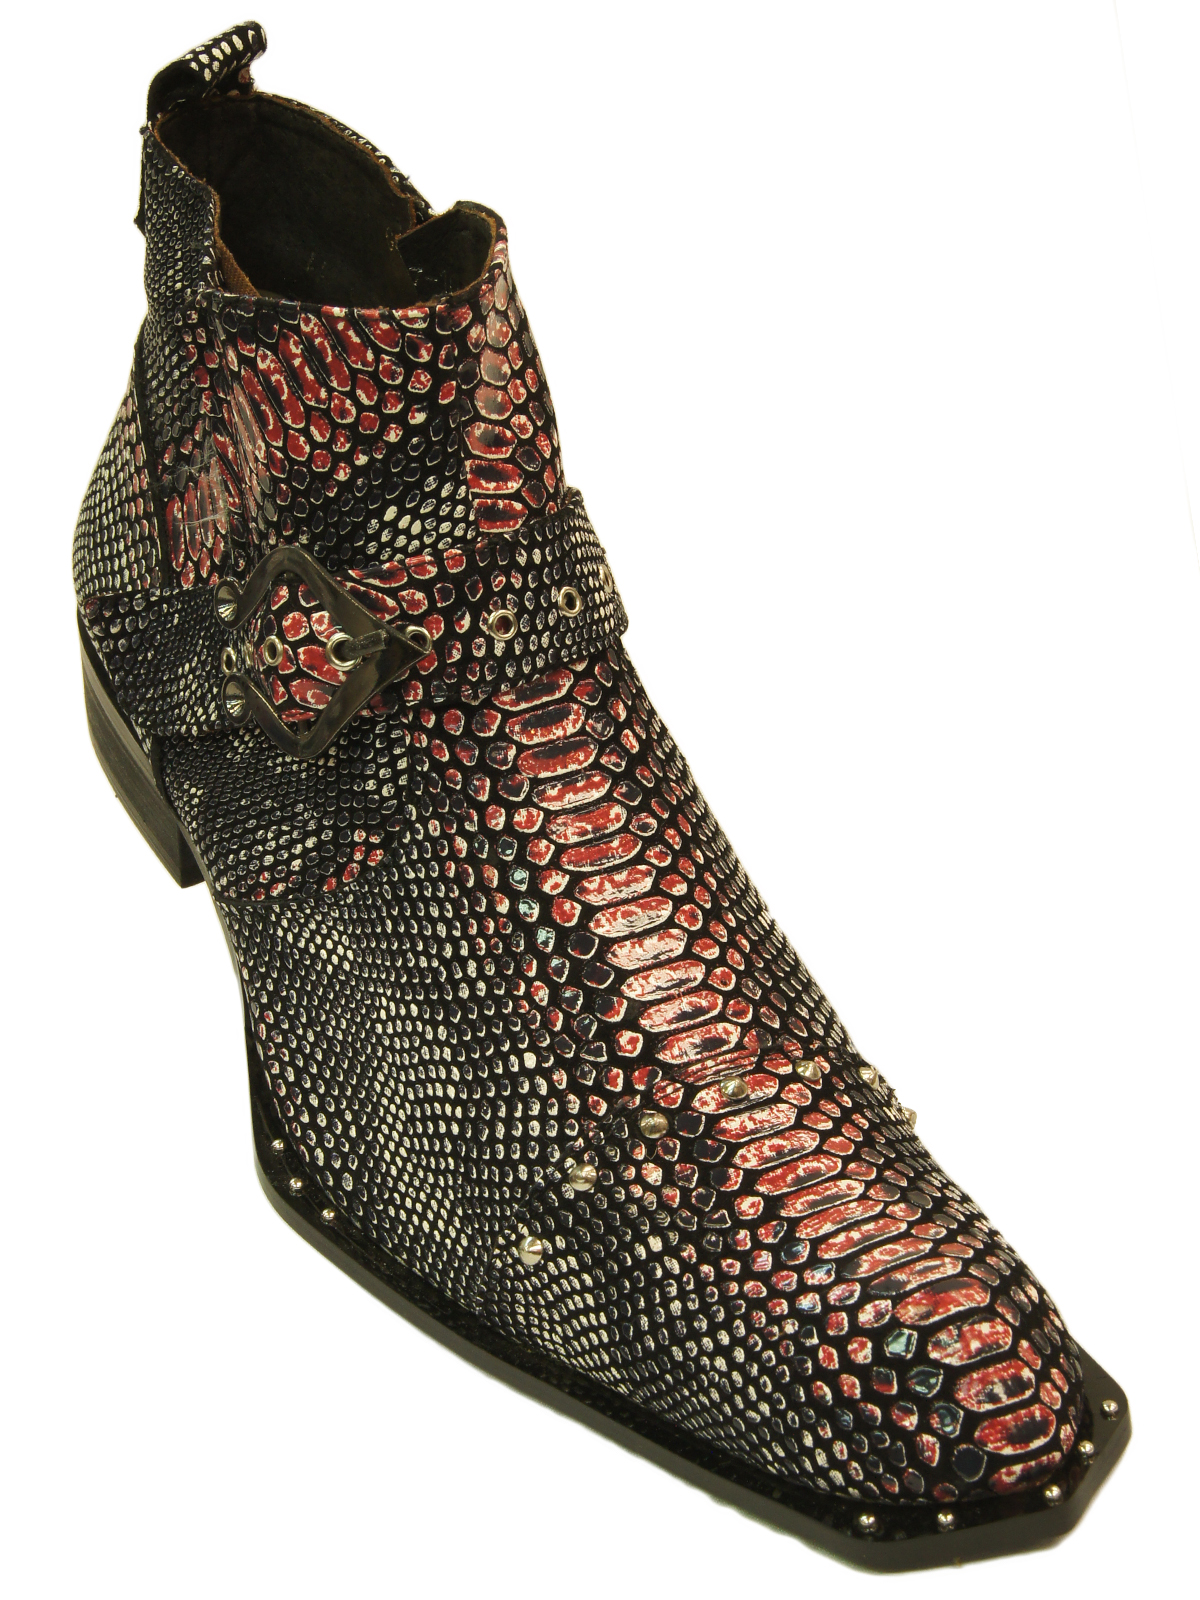 Are Mens Exoctic Skin Shoes Out Of Style